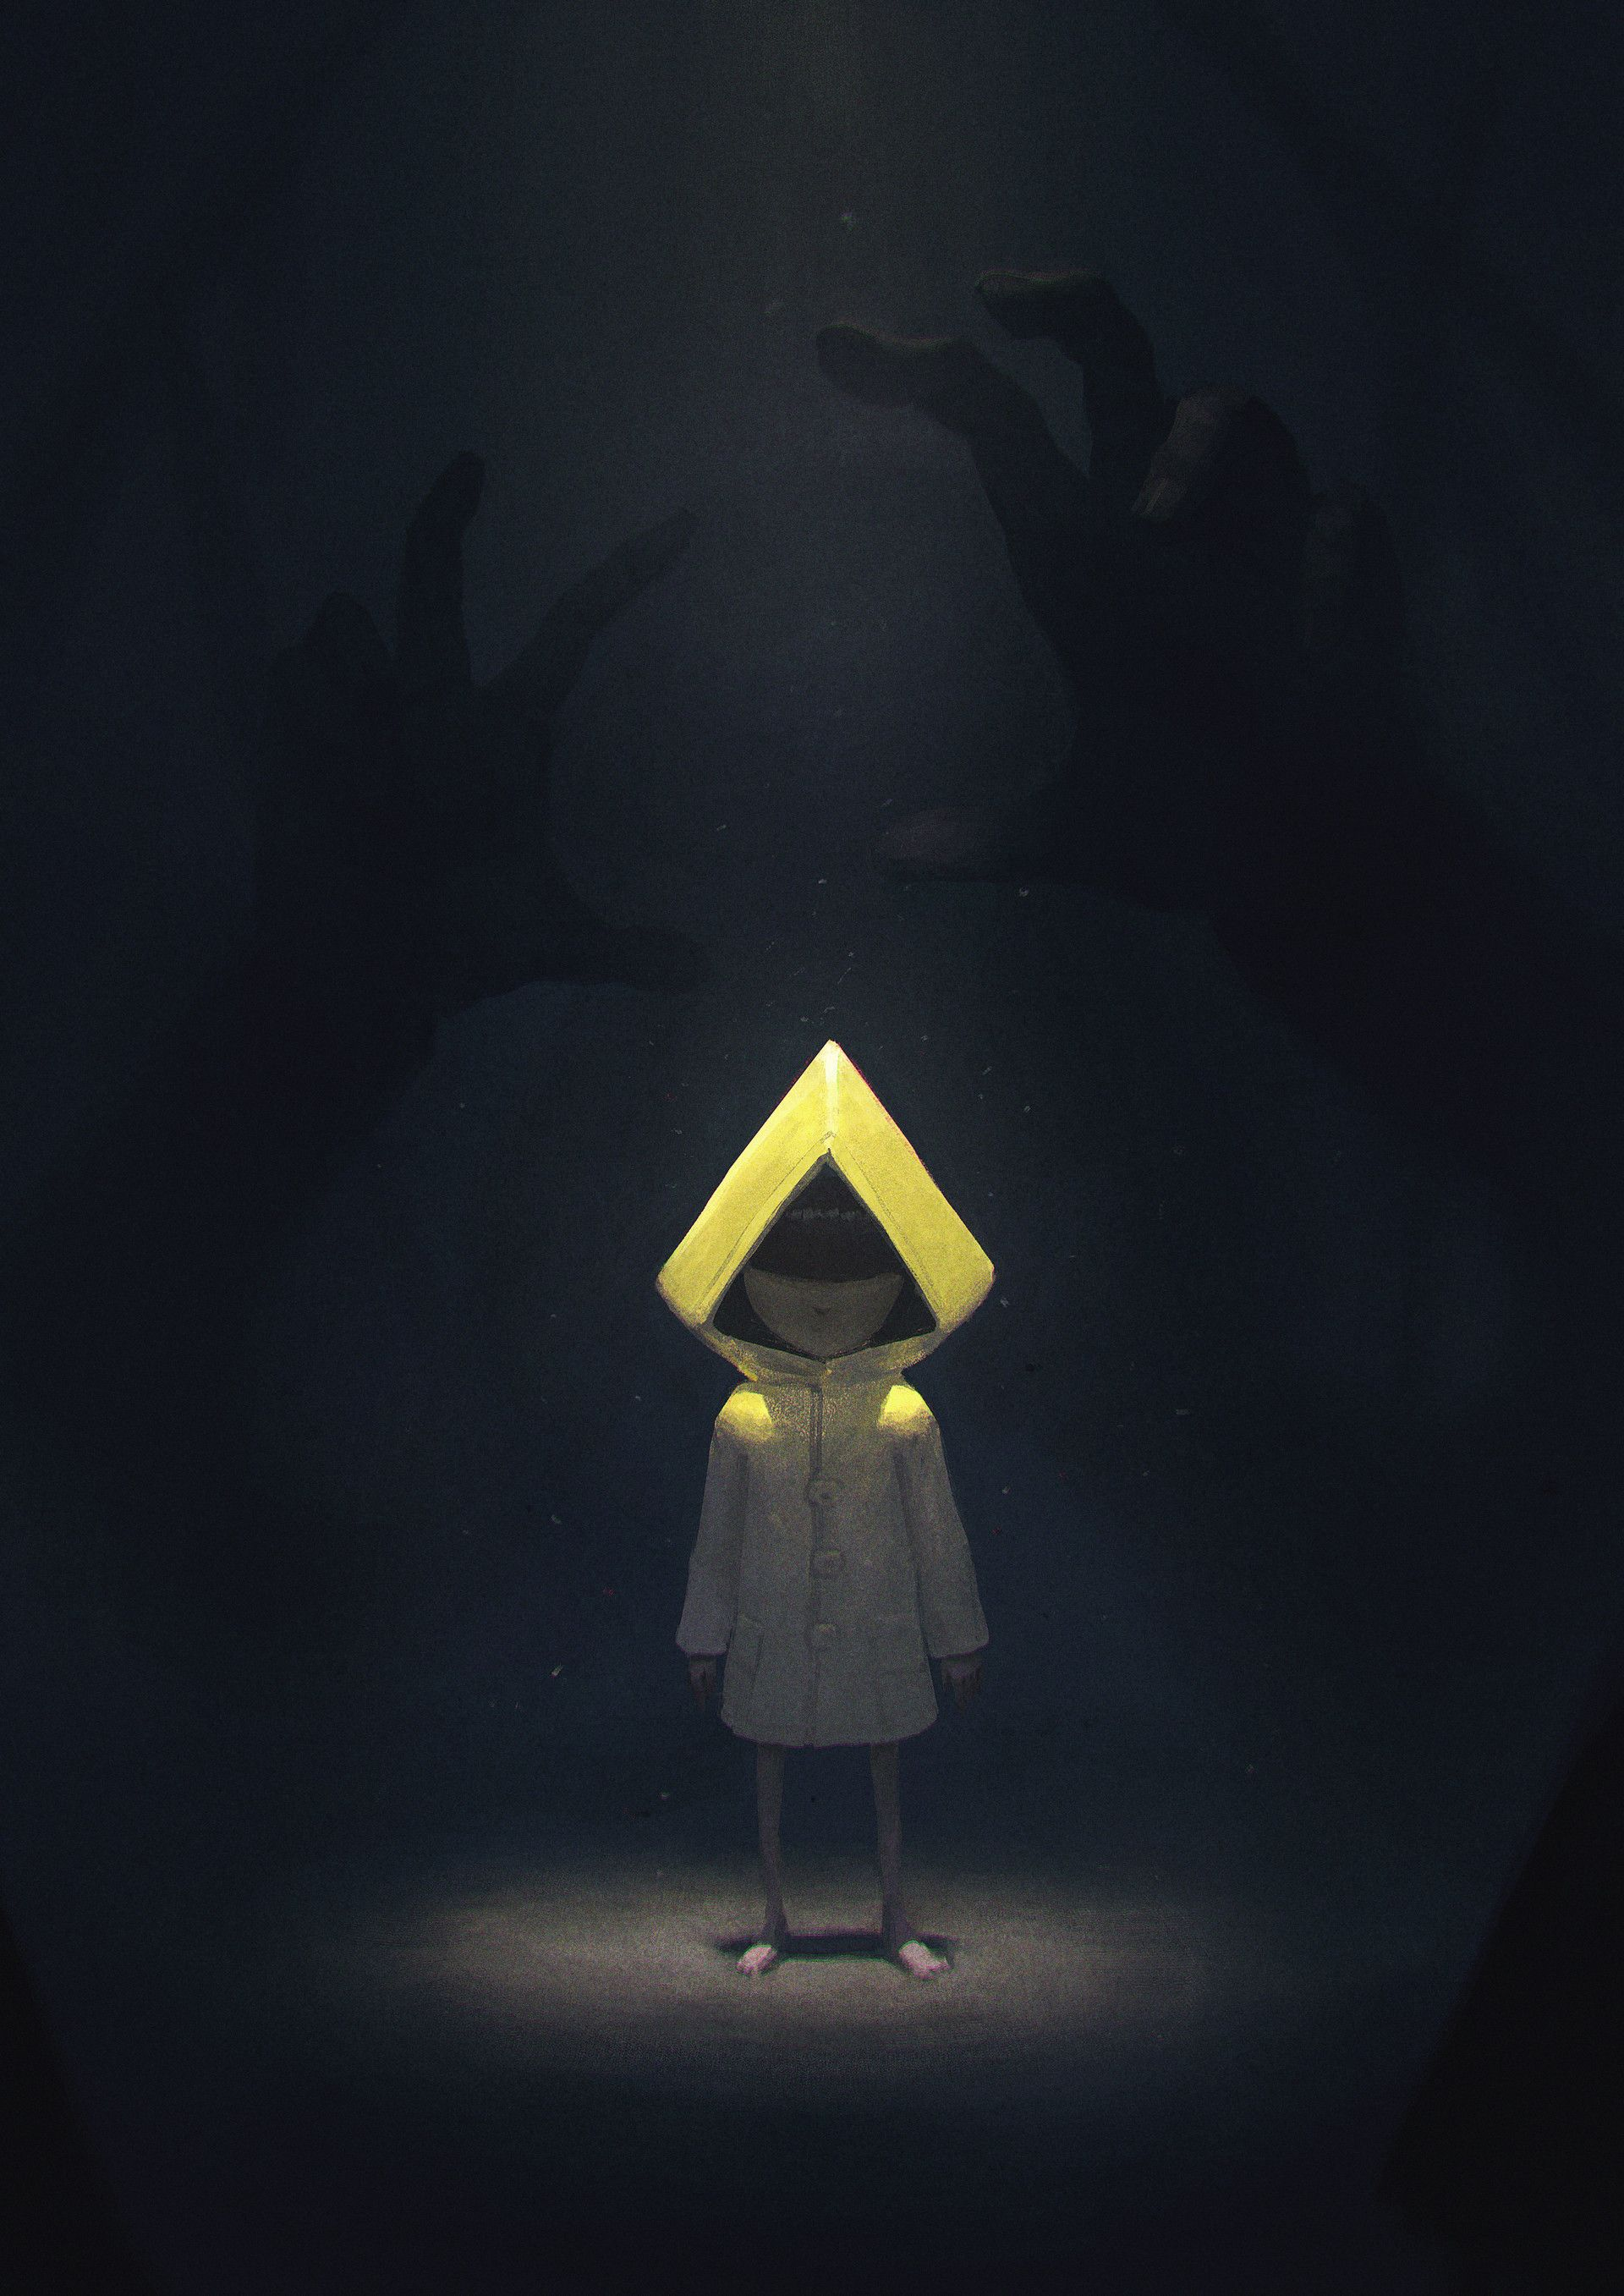 Pin by Mary Oneoranother on Little Nightmares Favourites